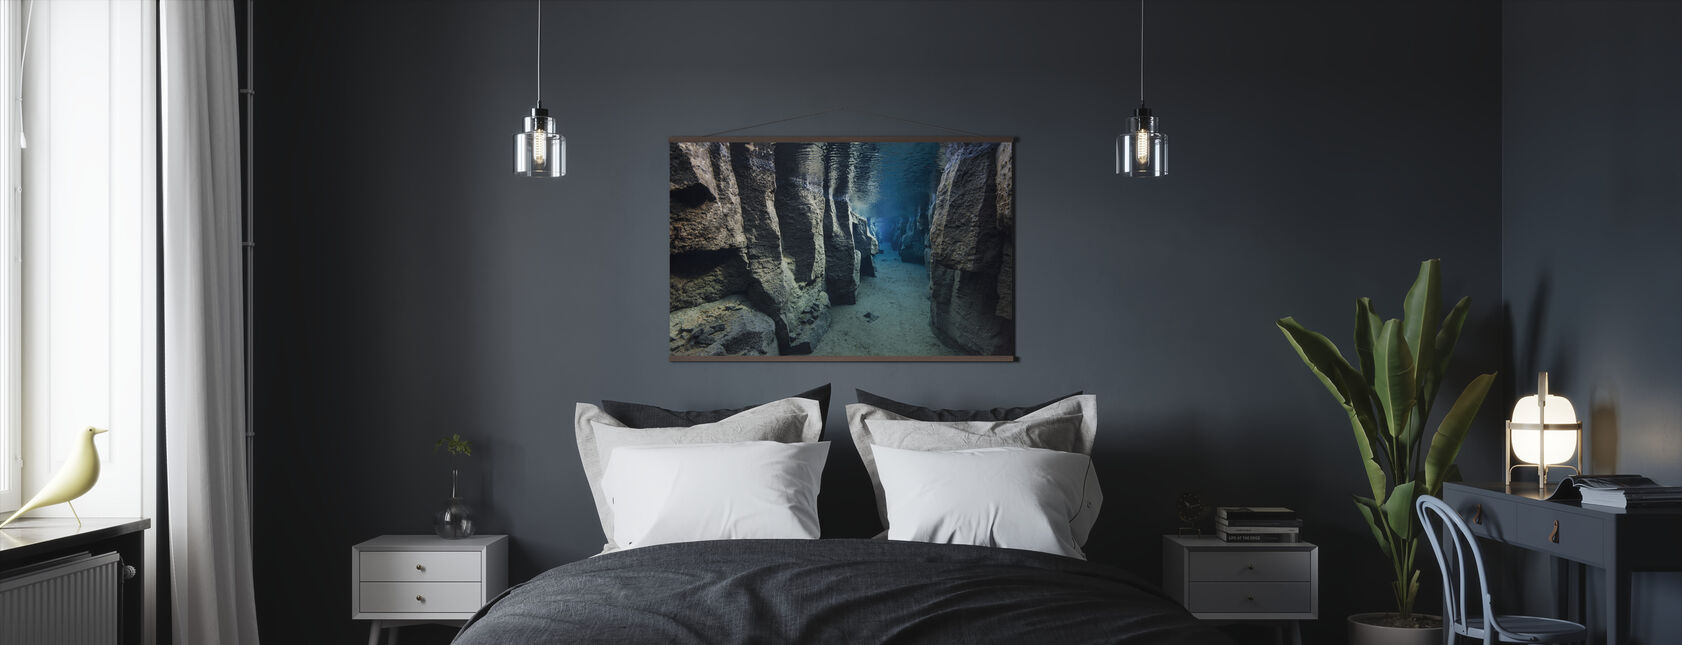 Rift Valley - Poster - Bedroom